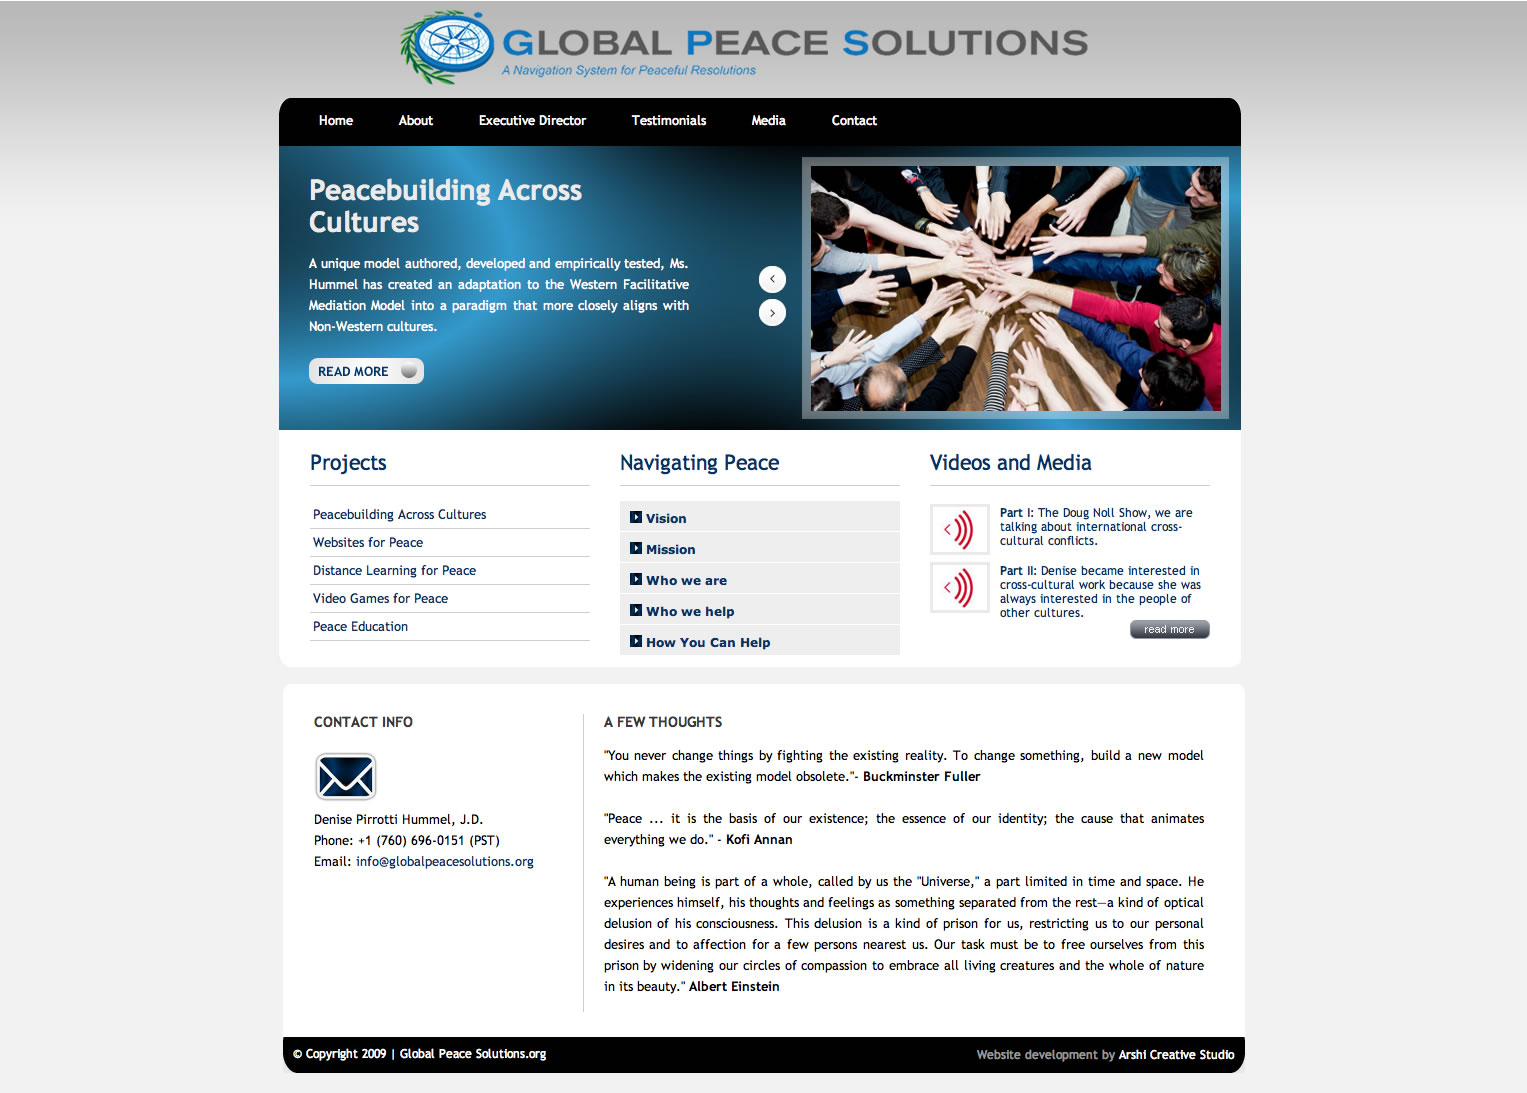 Global Peace Solutions